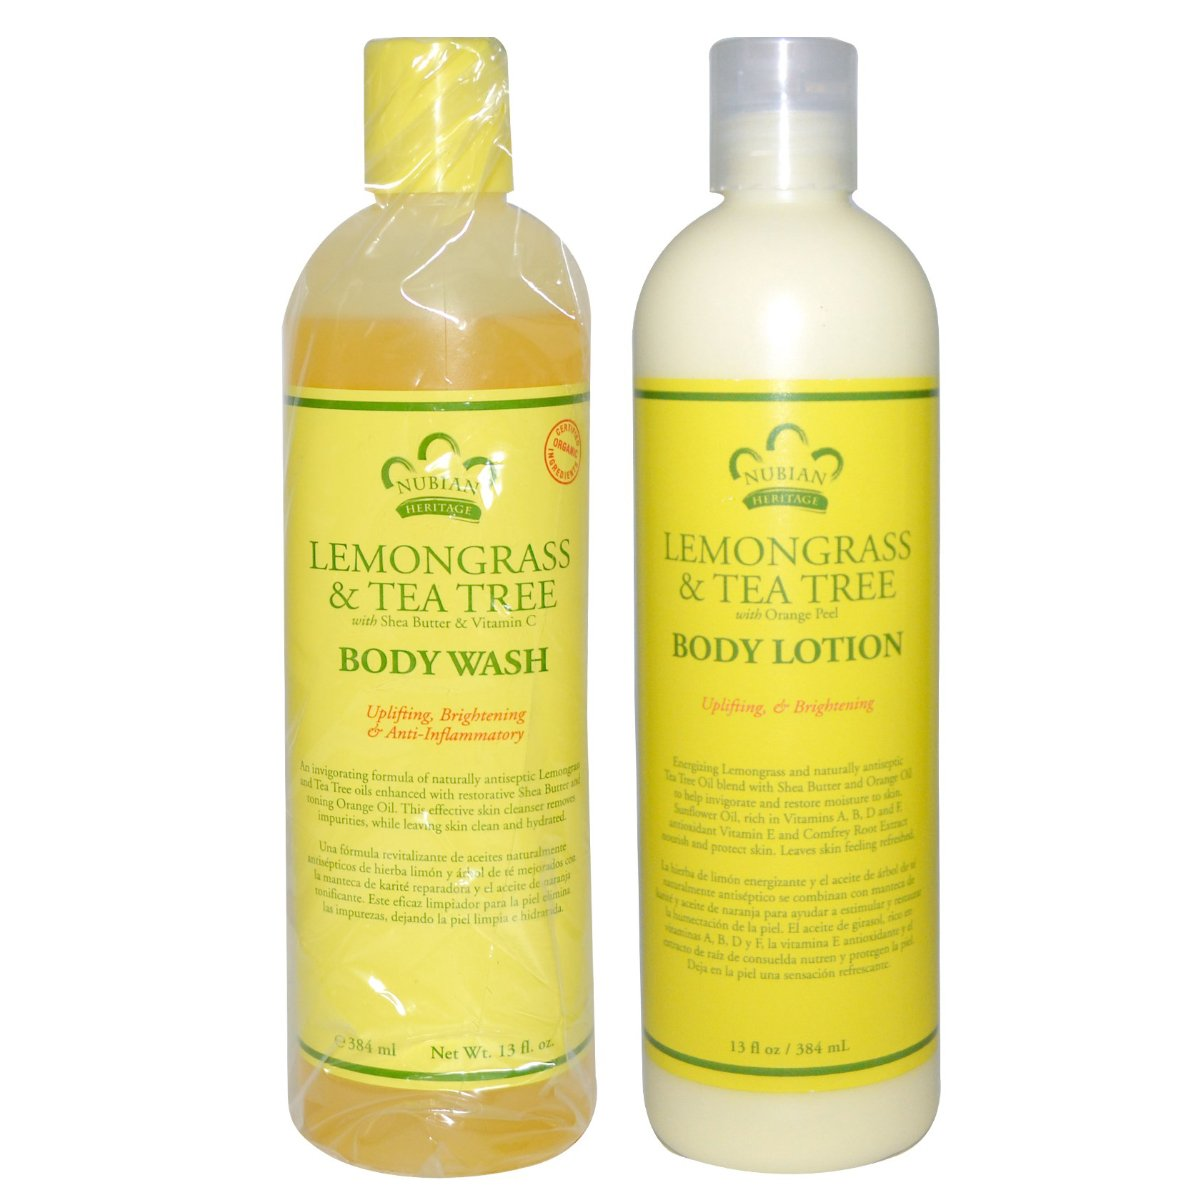 Amazon.com: Nubian Heritage Lemongrass & Tea Tree Body Wash and Body Lotion Bundle, With Shea Butter, Orange Oil & Vitamin E, 13 oz each: Beauty